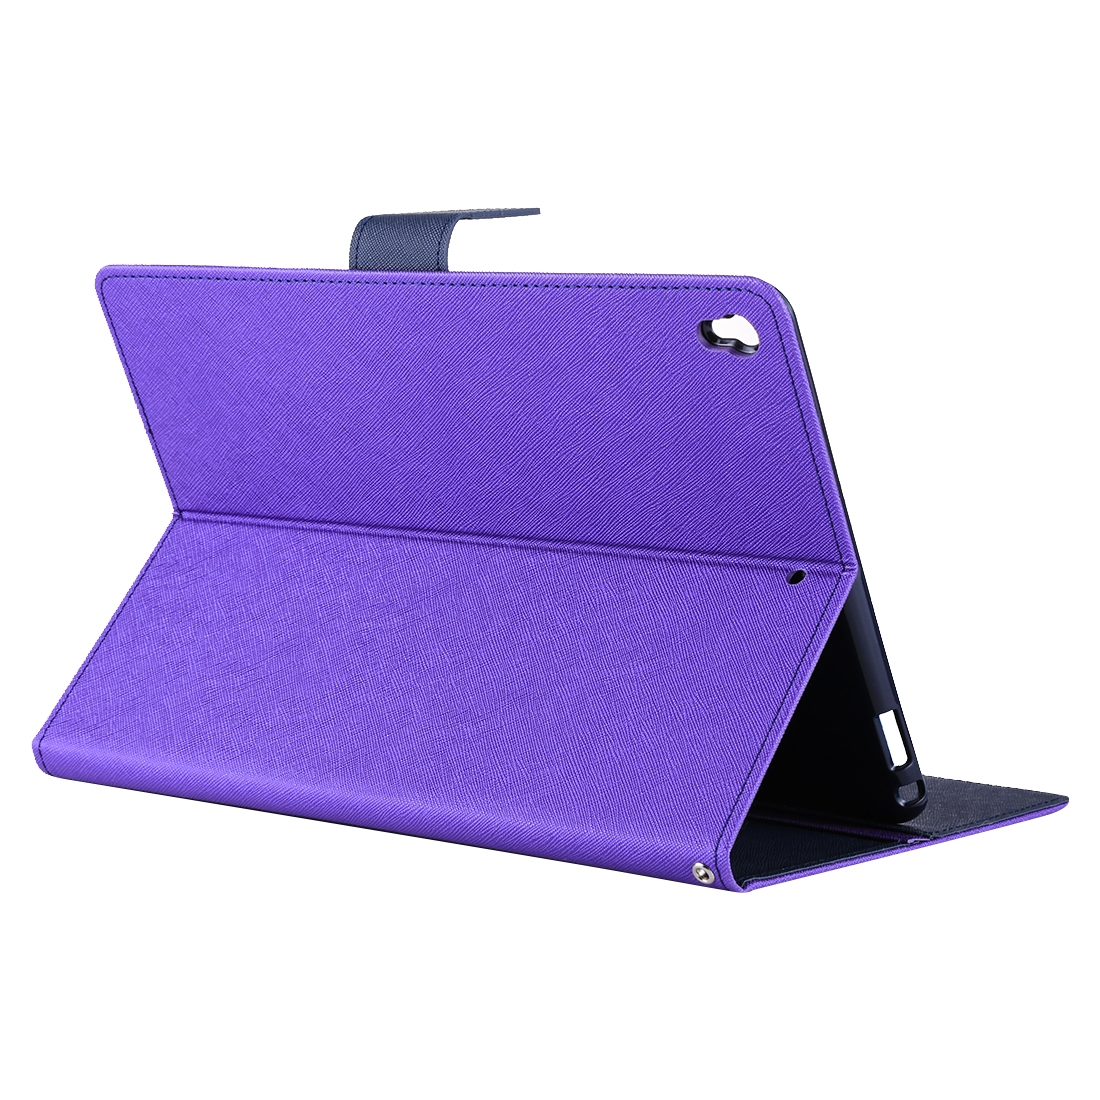 iPad Air 3 Case (10.5 Inch) Anti-slip Leather Protector Case (Purple)